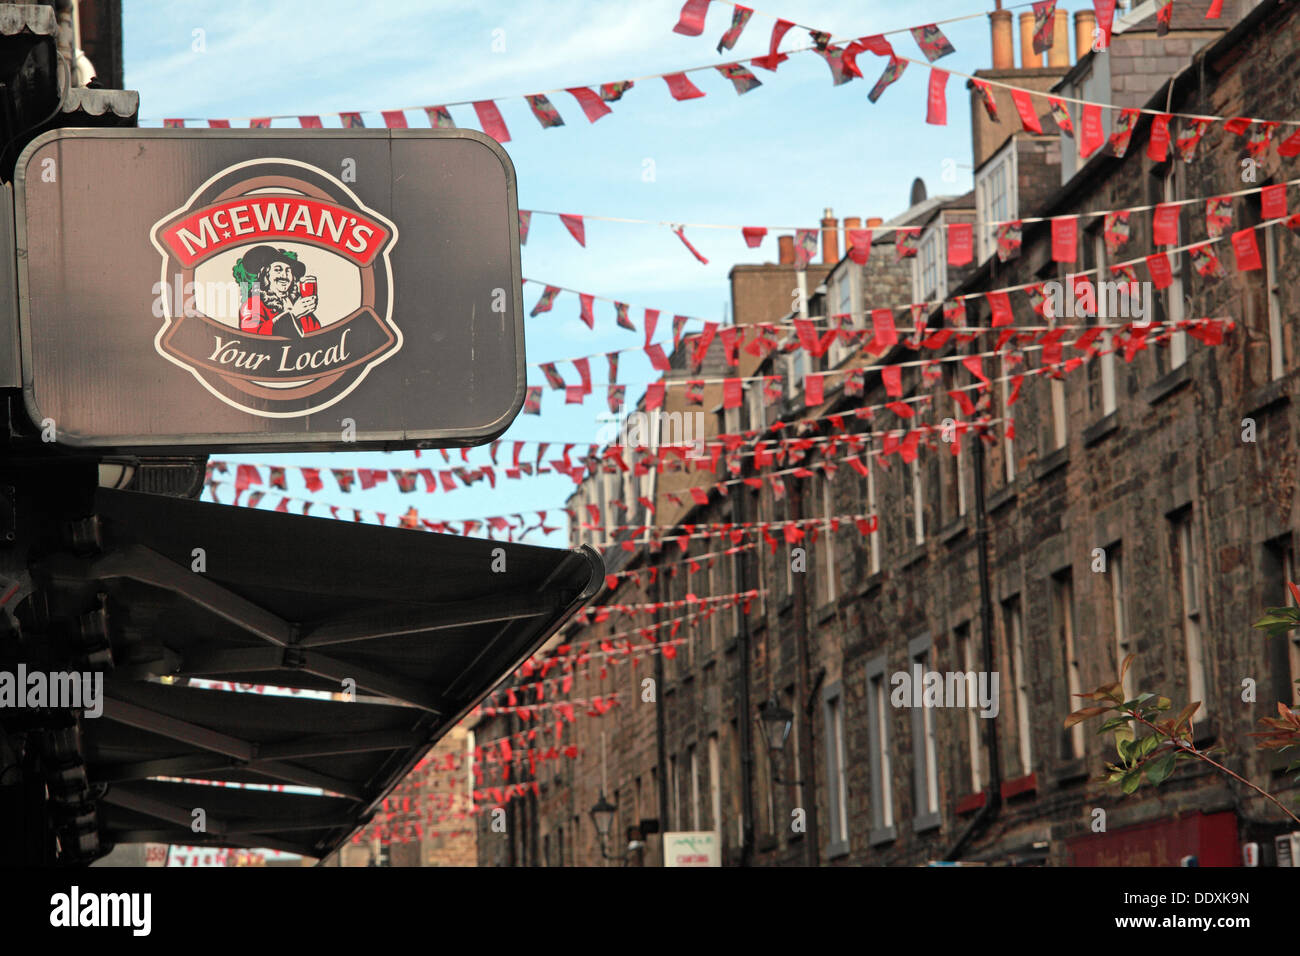 Rose Street,Edinburgh,Scotland,UK a place to drink,eat,party - McEwans Your Local Stock Photo